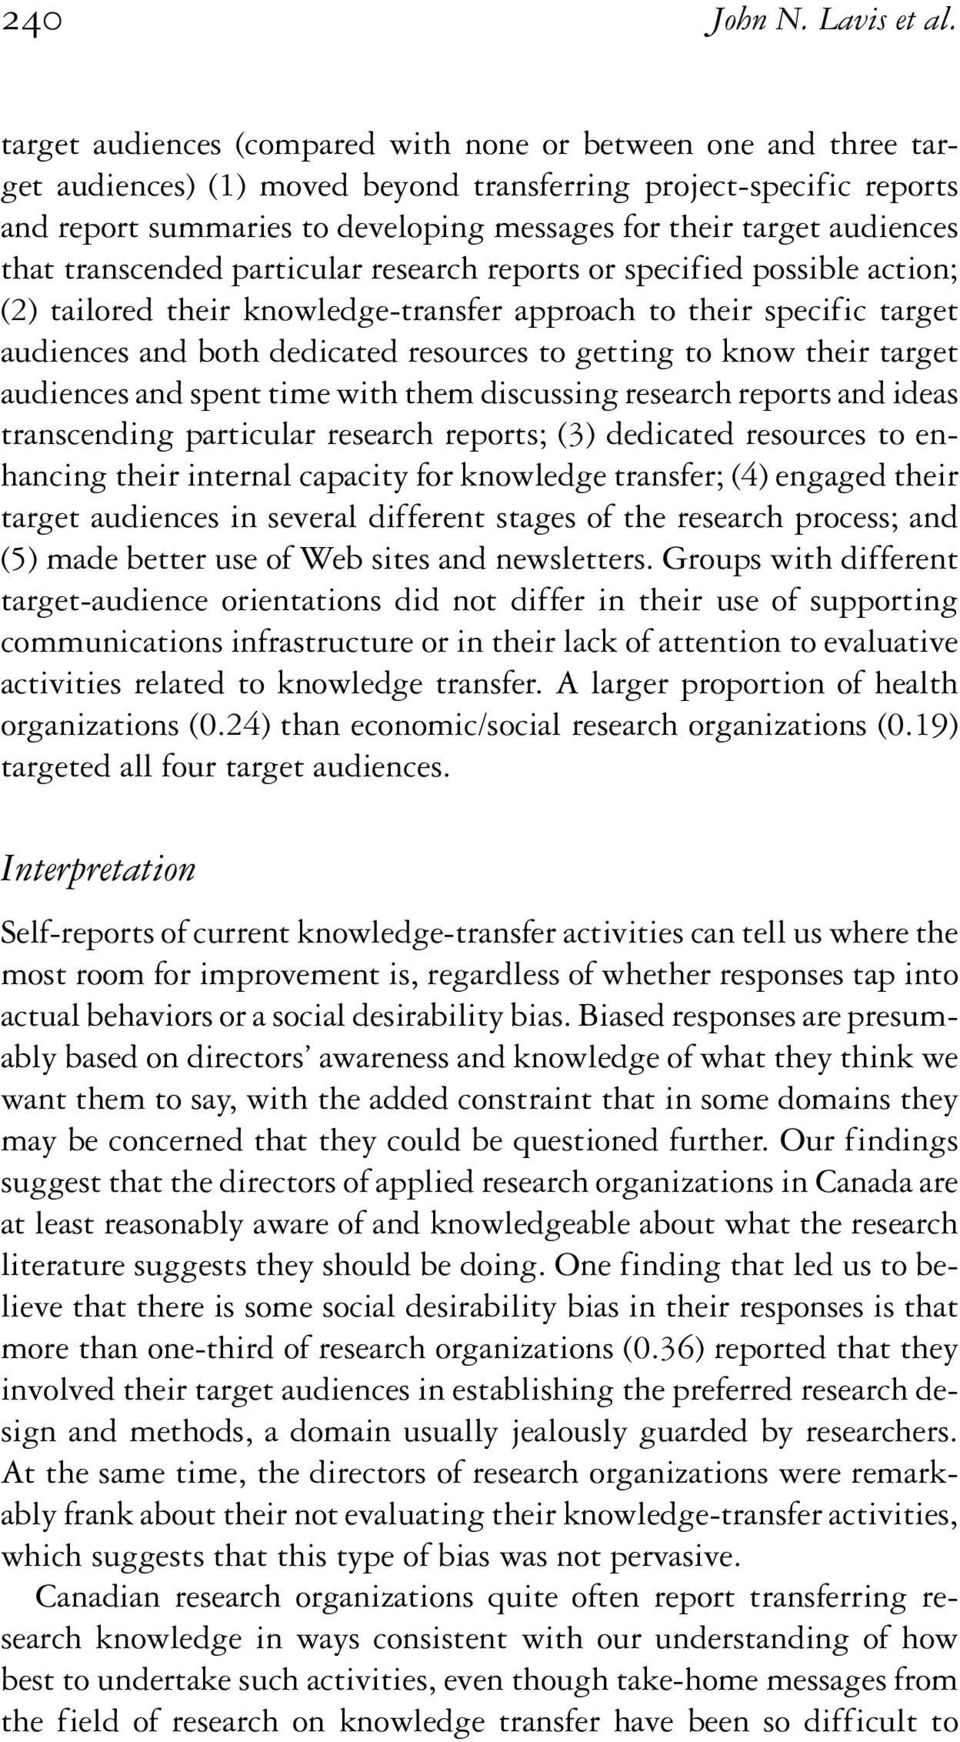 audiences that transcended particular research reports or specified possible action; (2) tailored their knowledge-transfer approach to their specific target audiences and both dedicated resources to